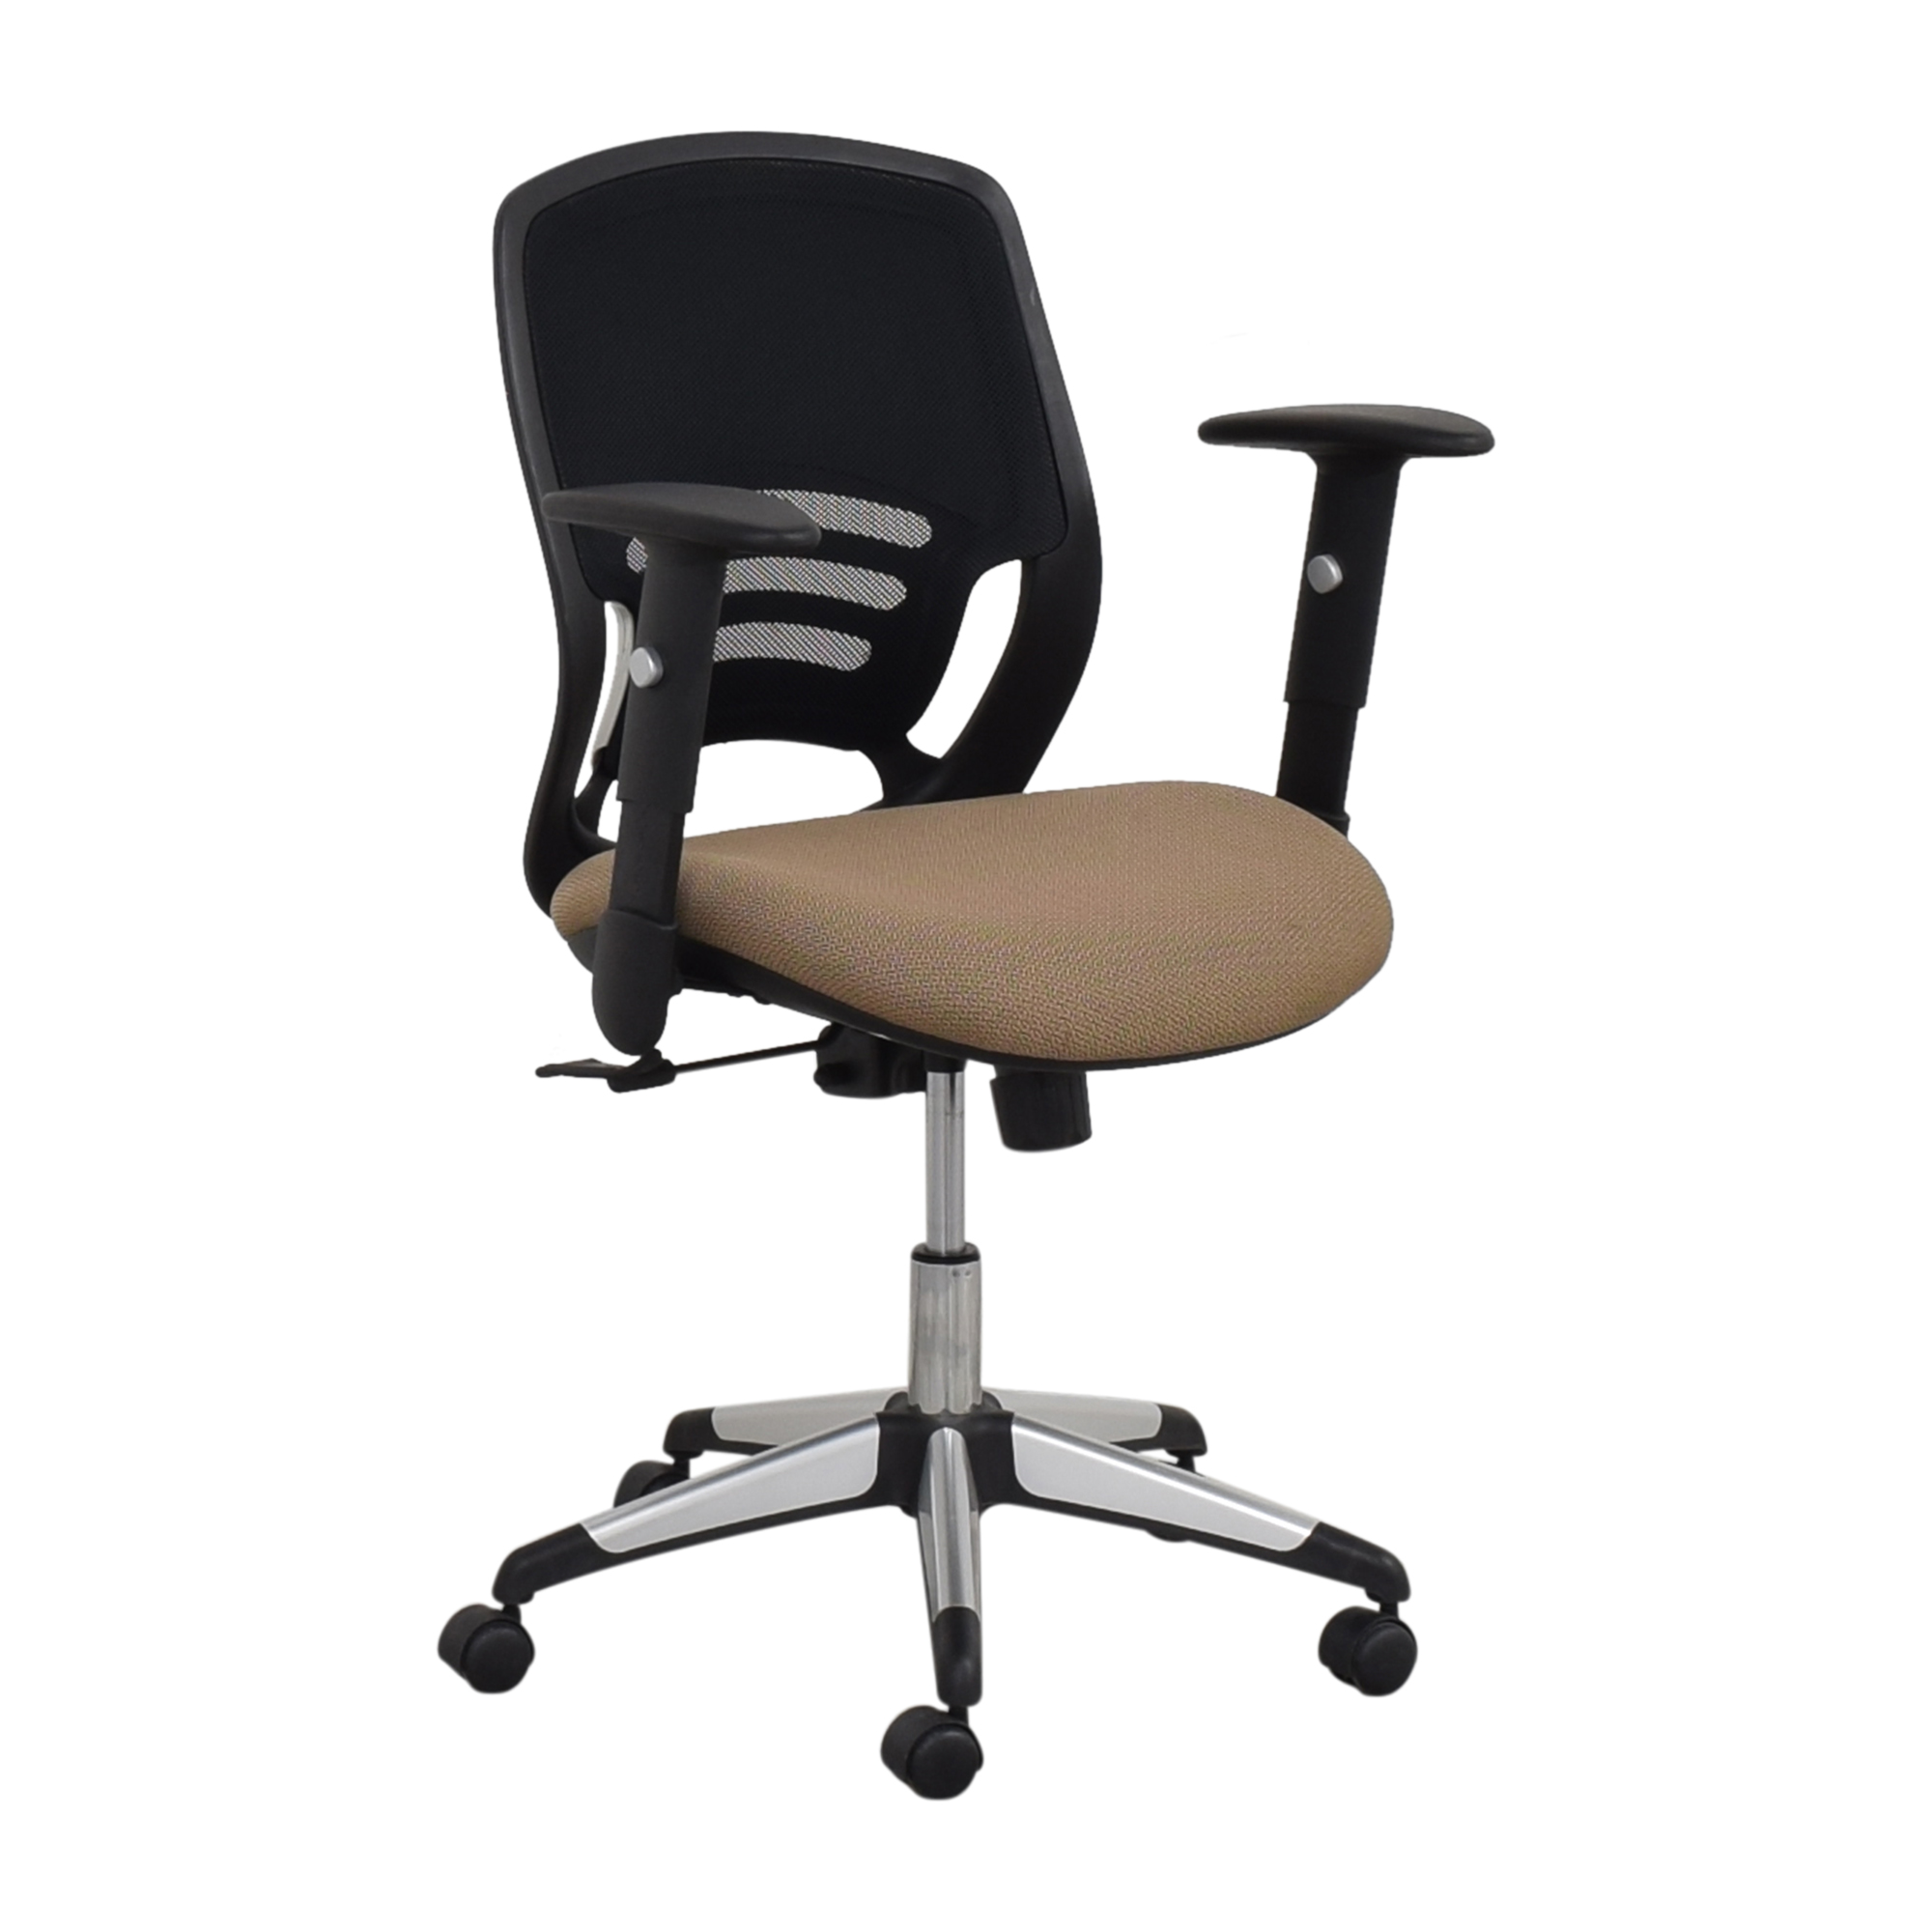 Offices to Go Offices to Go Low Mesh Back Swivel Chair dimensions